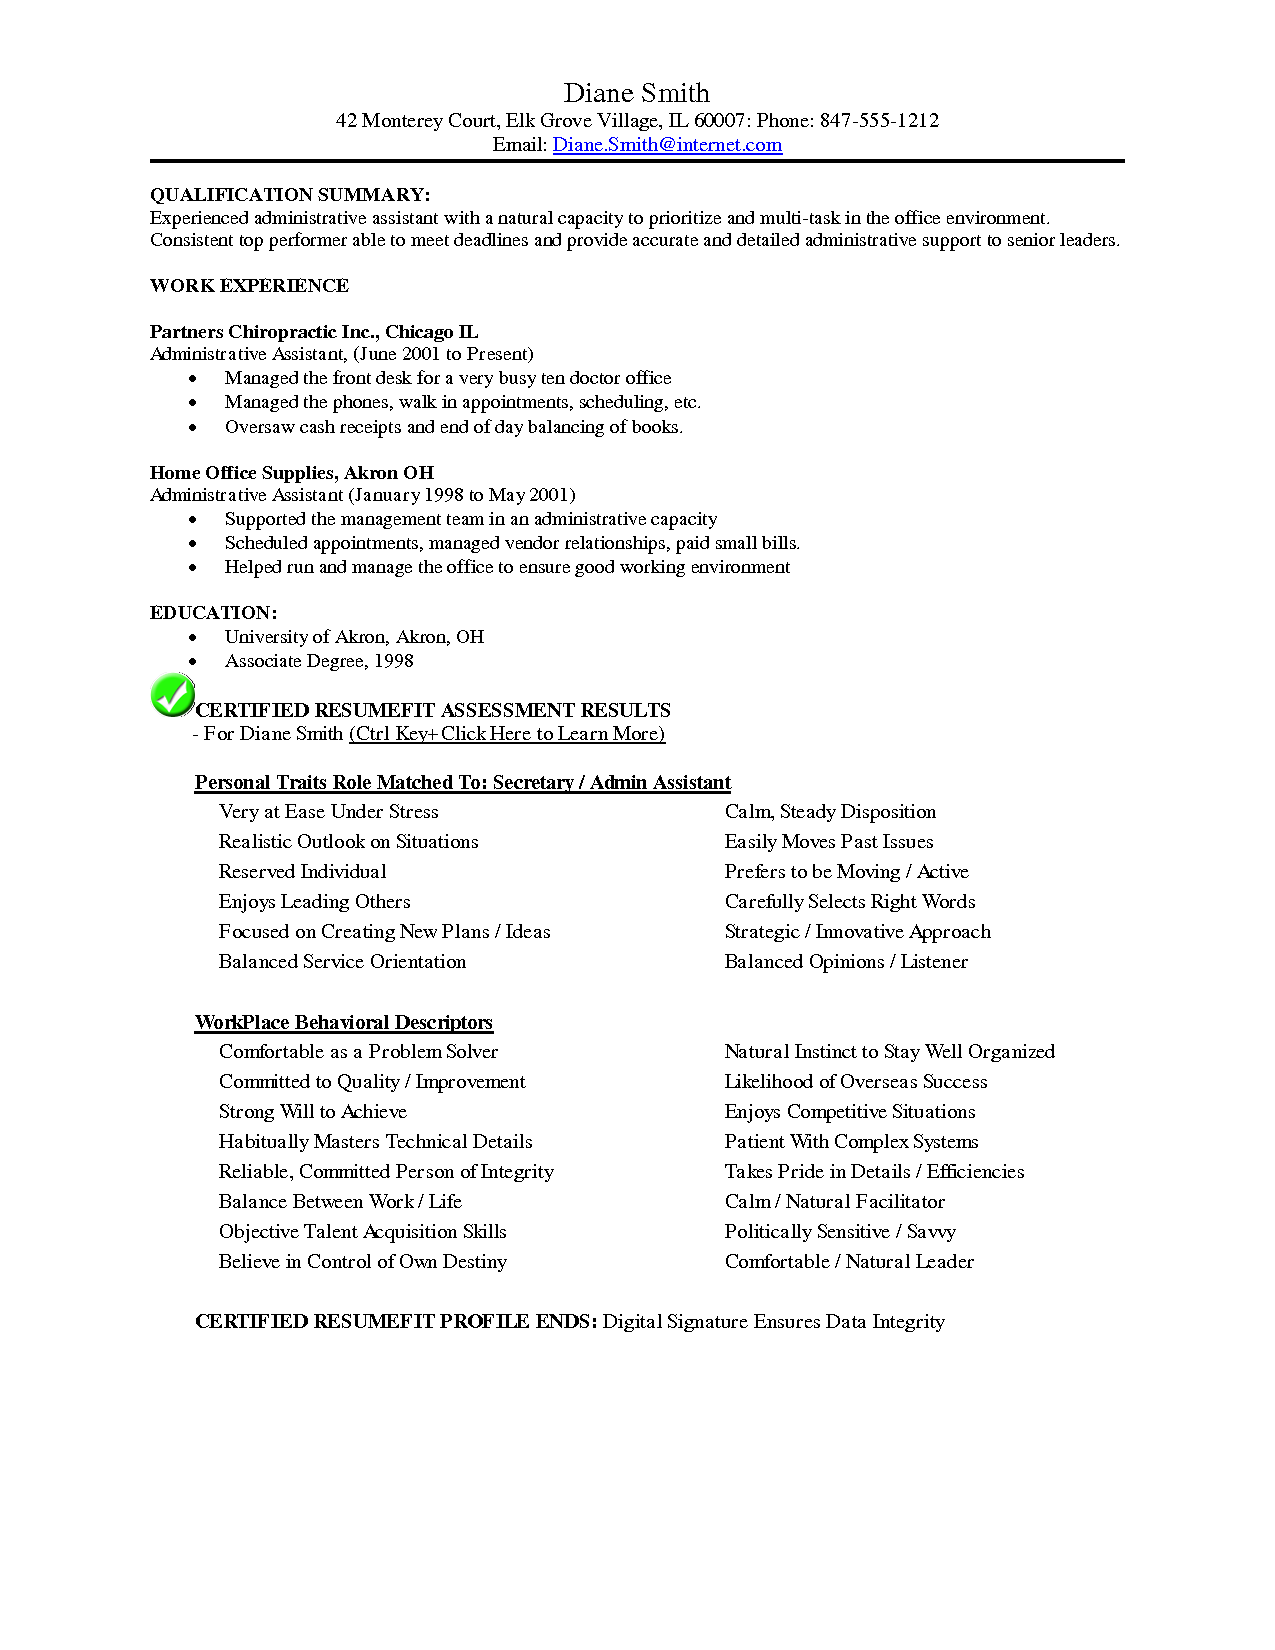 Cover Letter For A Resume. Collection Of Solutions Email Cover ...